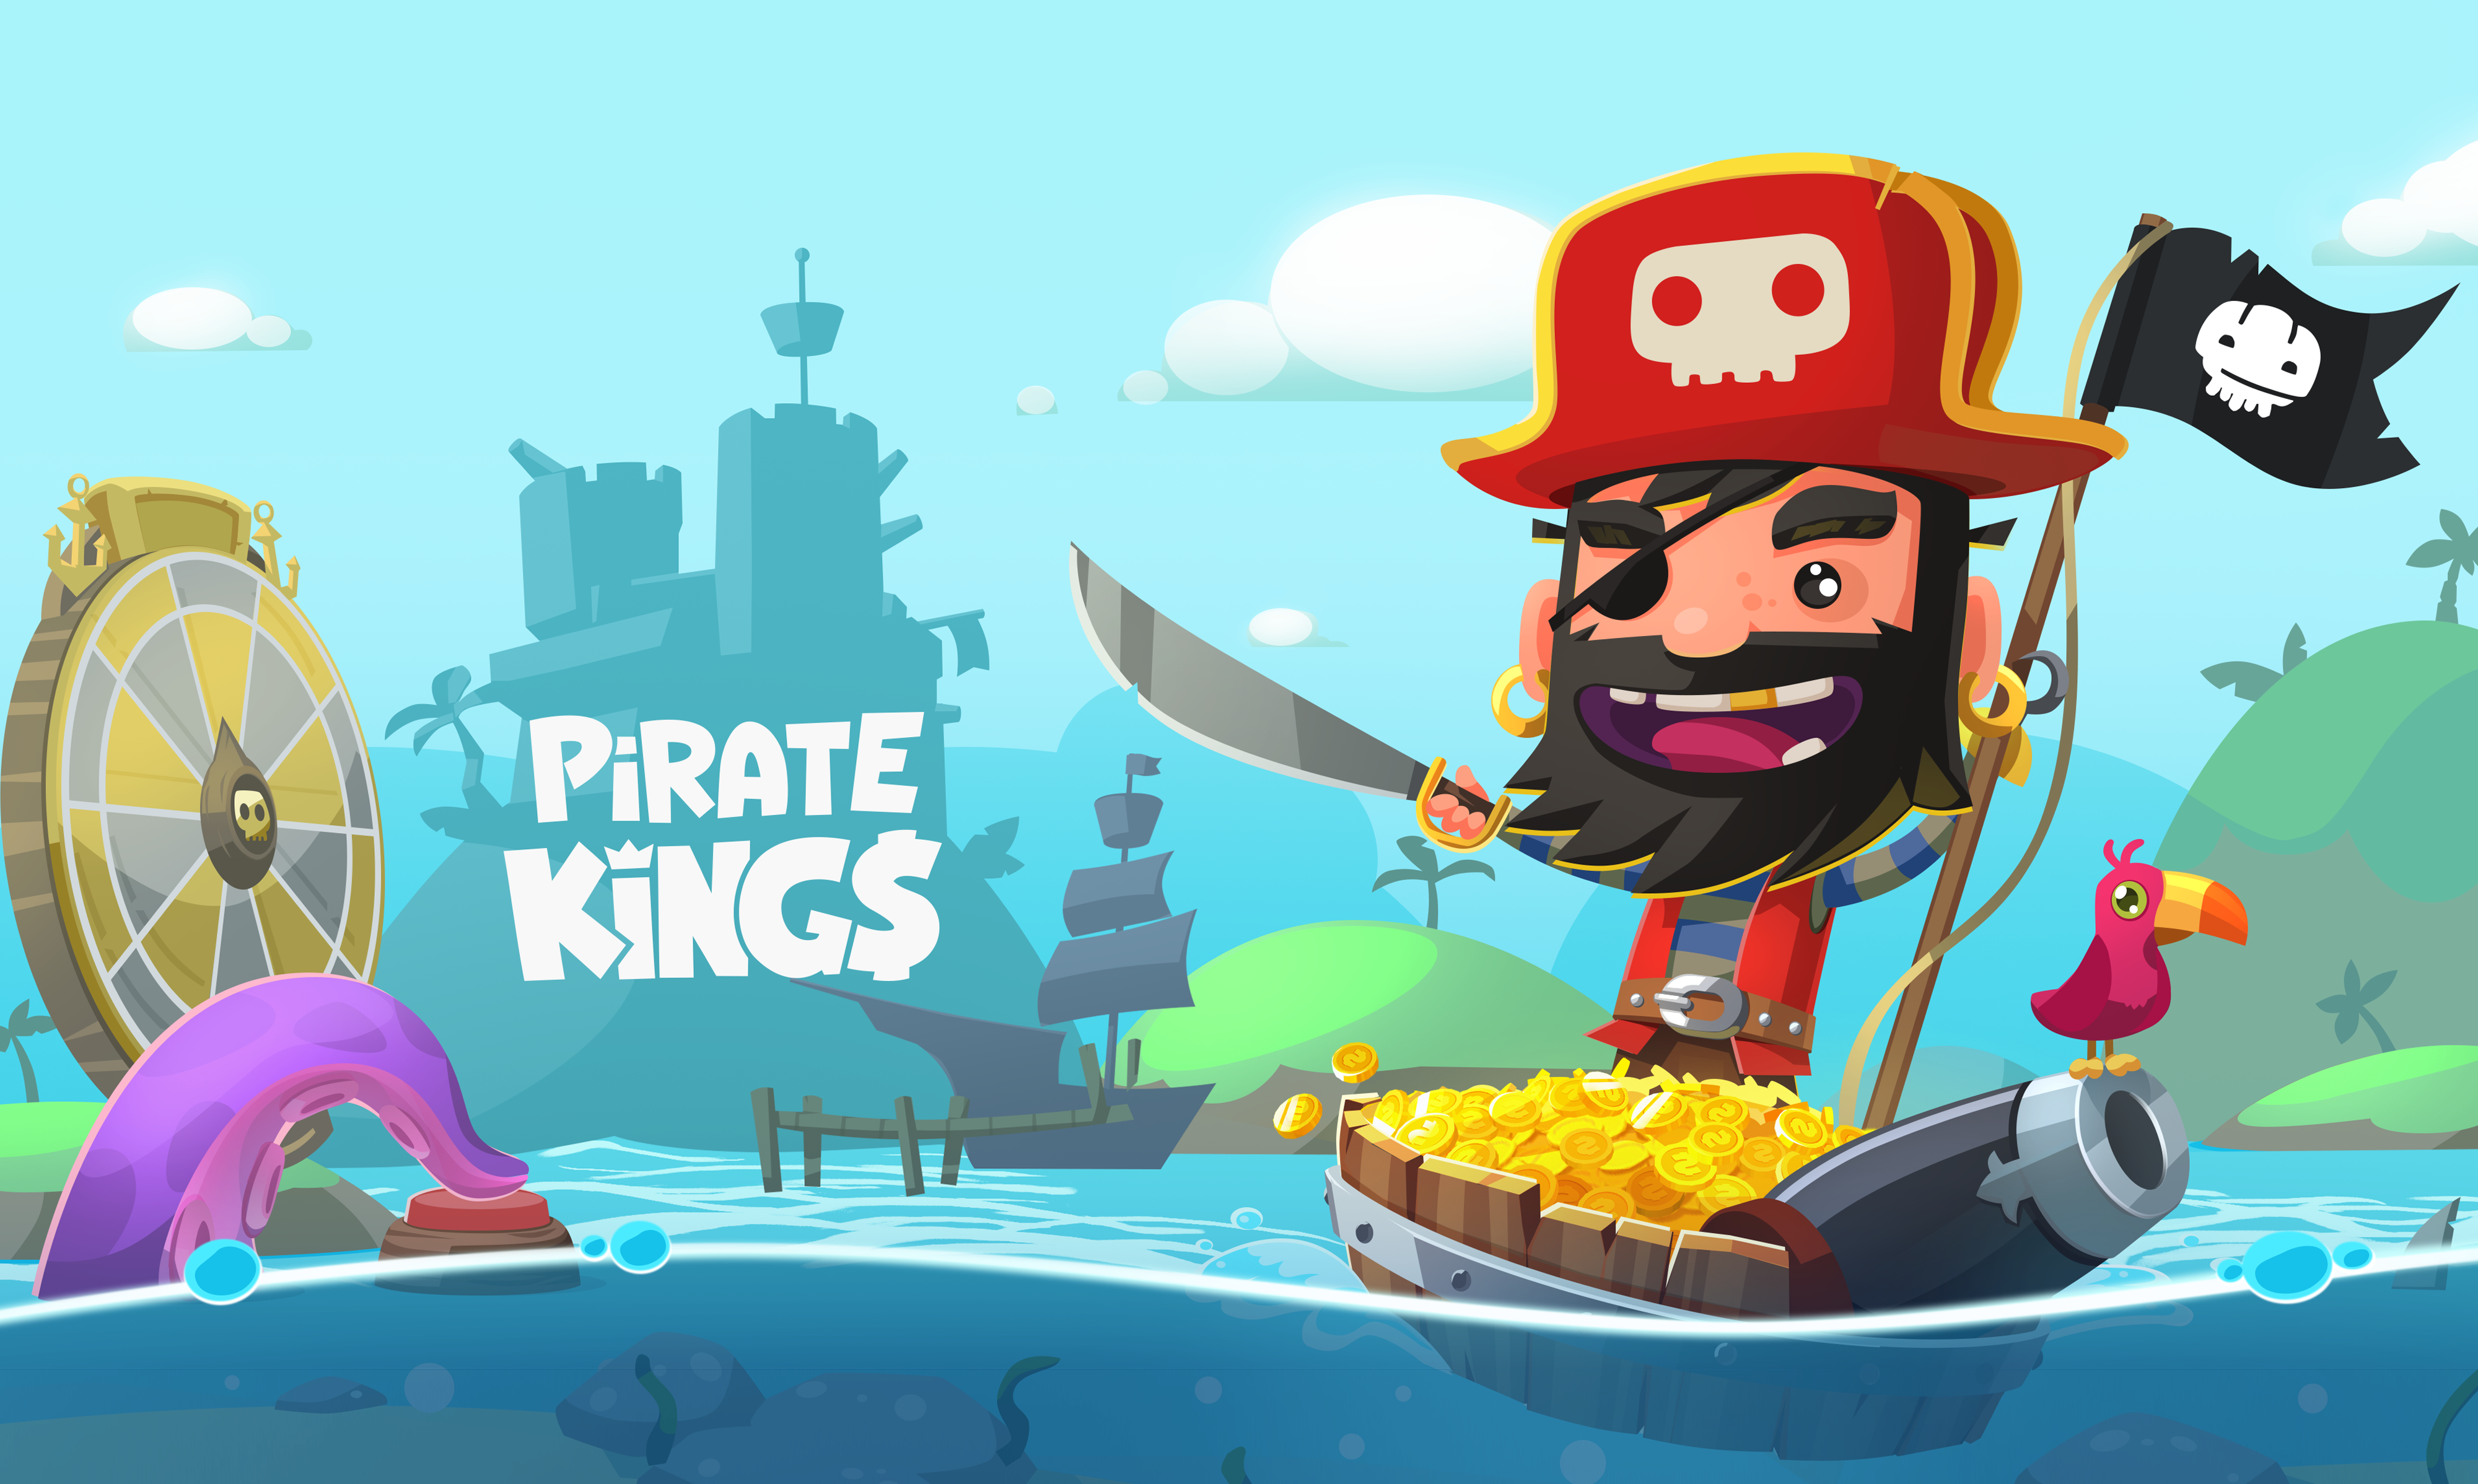 Pirate Kings Mod APK Download